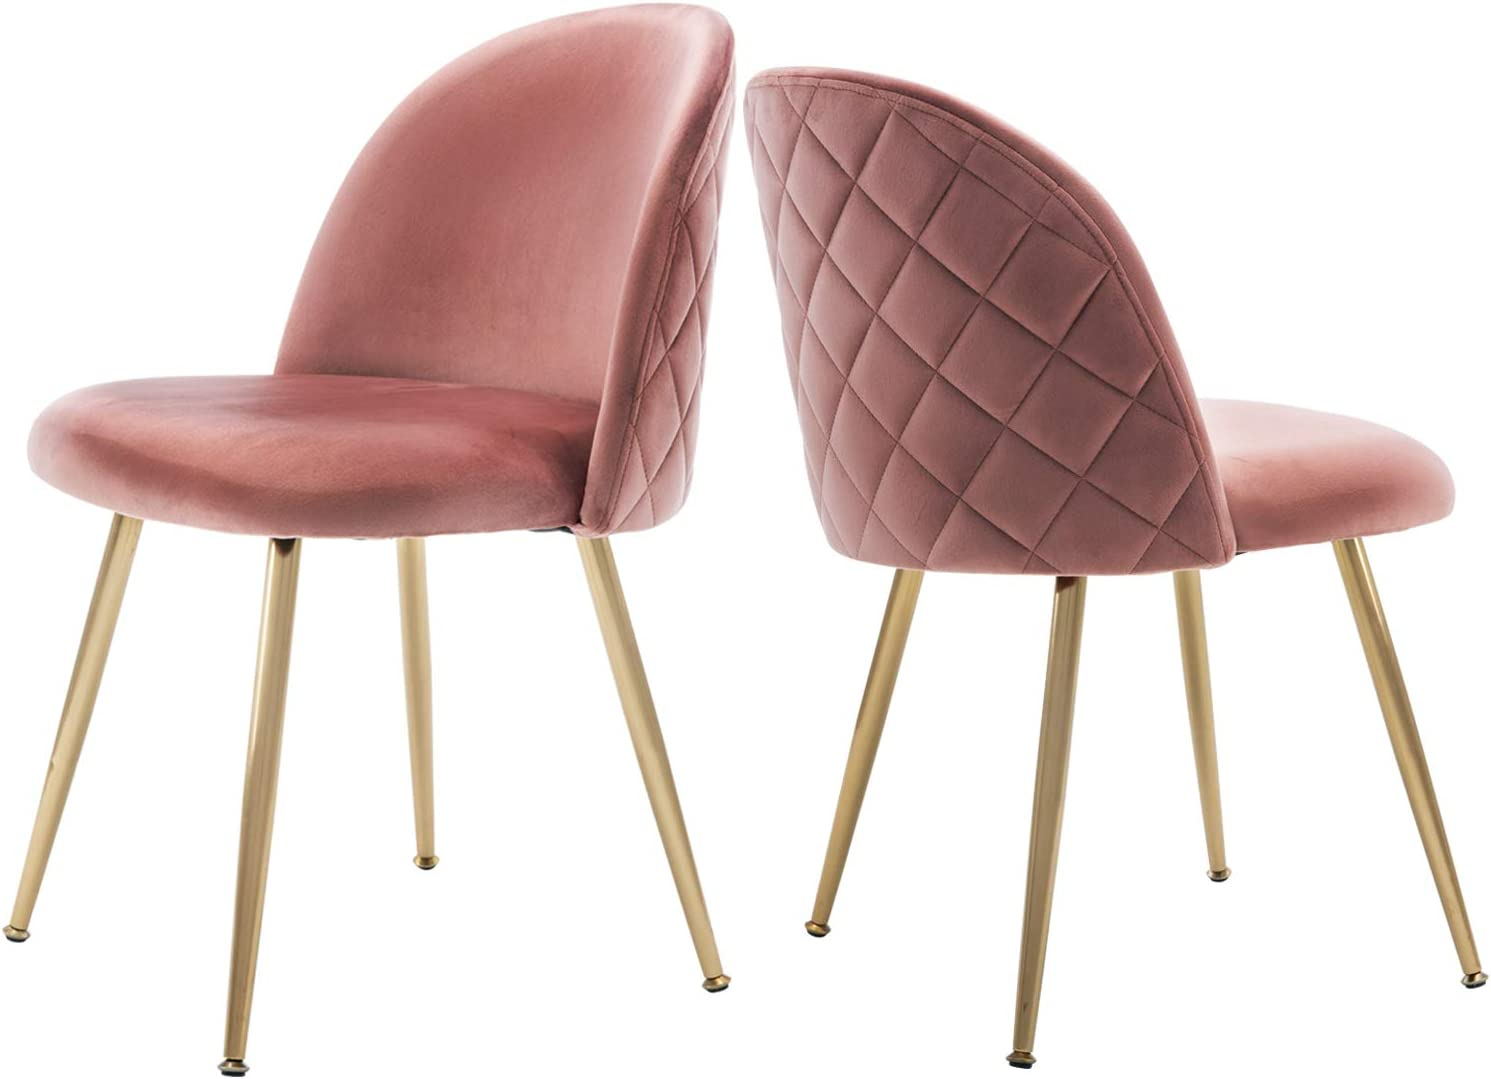 Modern Velvet Dining Chairs, Upholstered Living Room Accent Chairs, Gold Vanity Chairs, Set of 2 - Pink